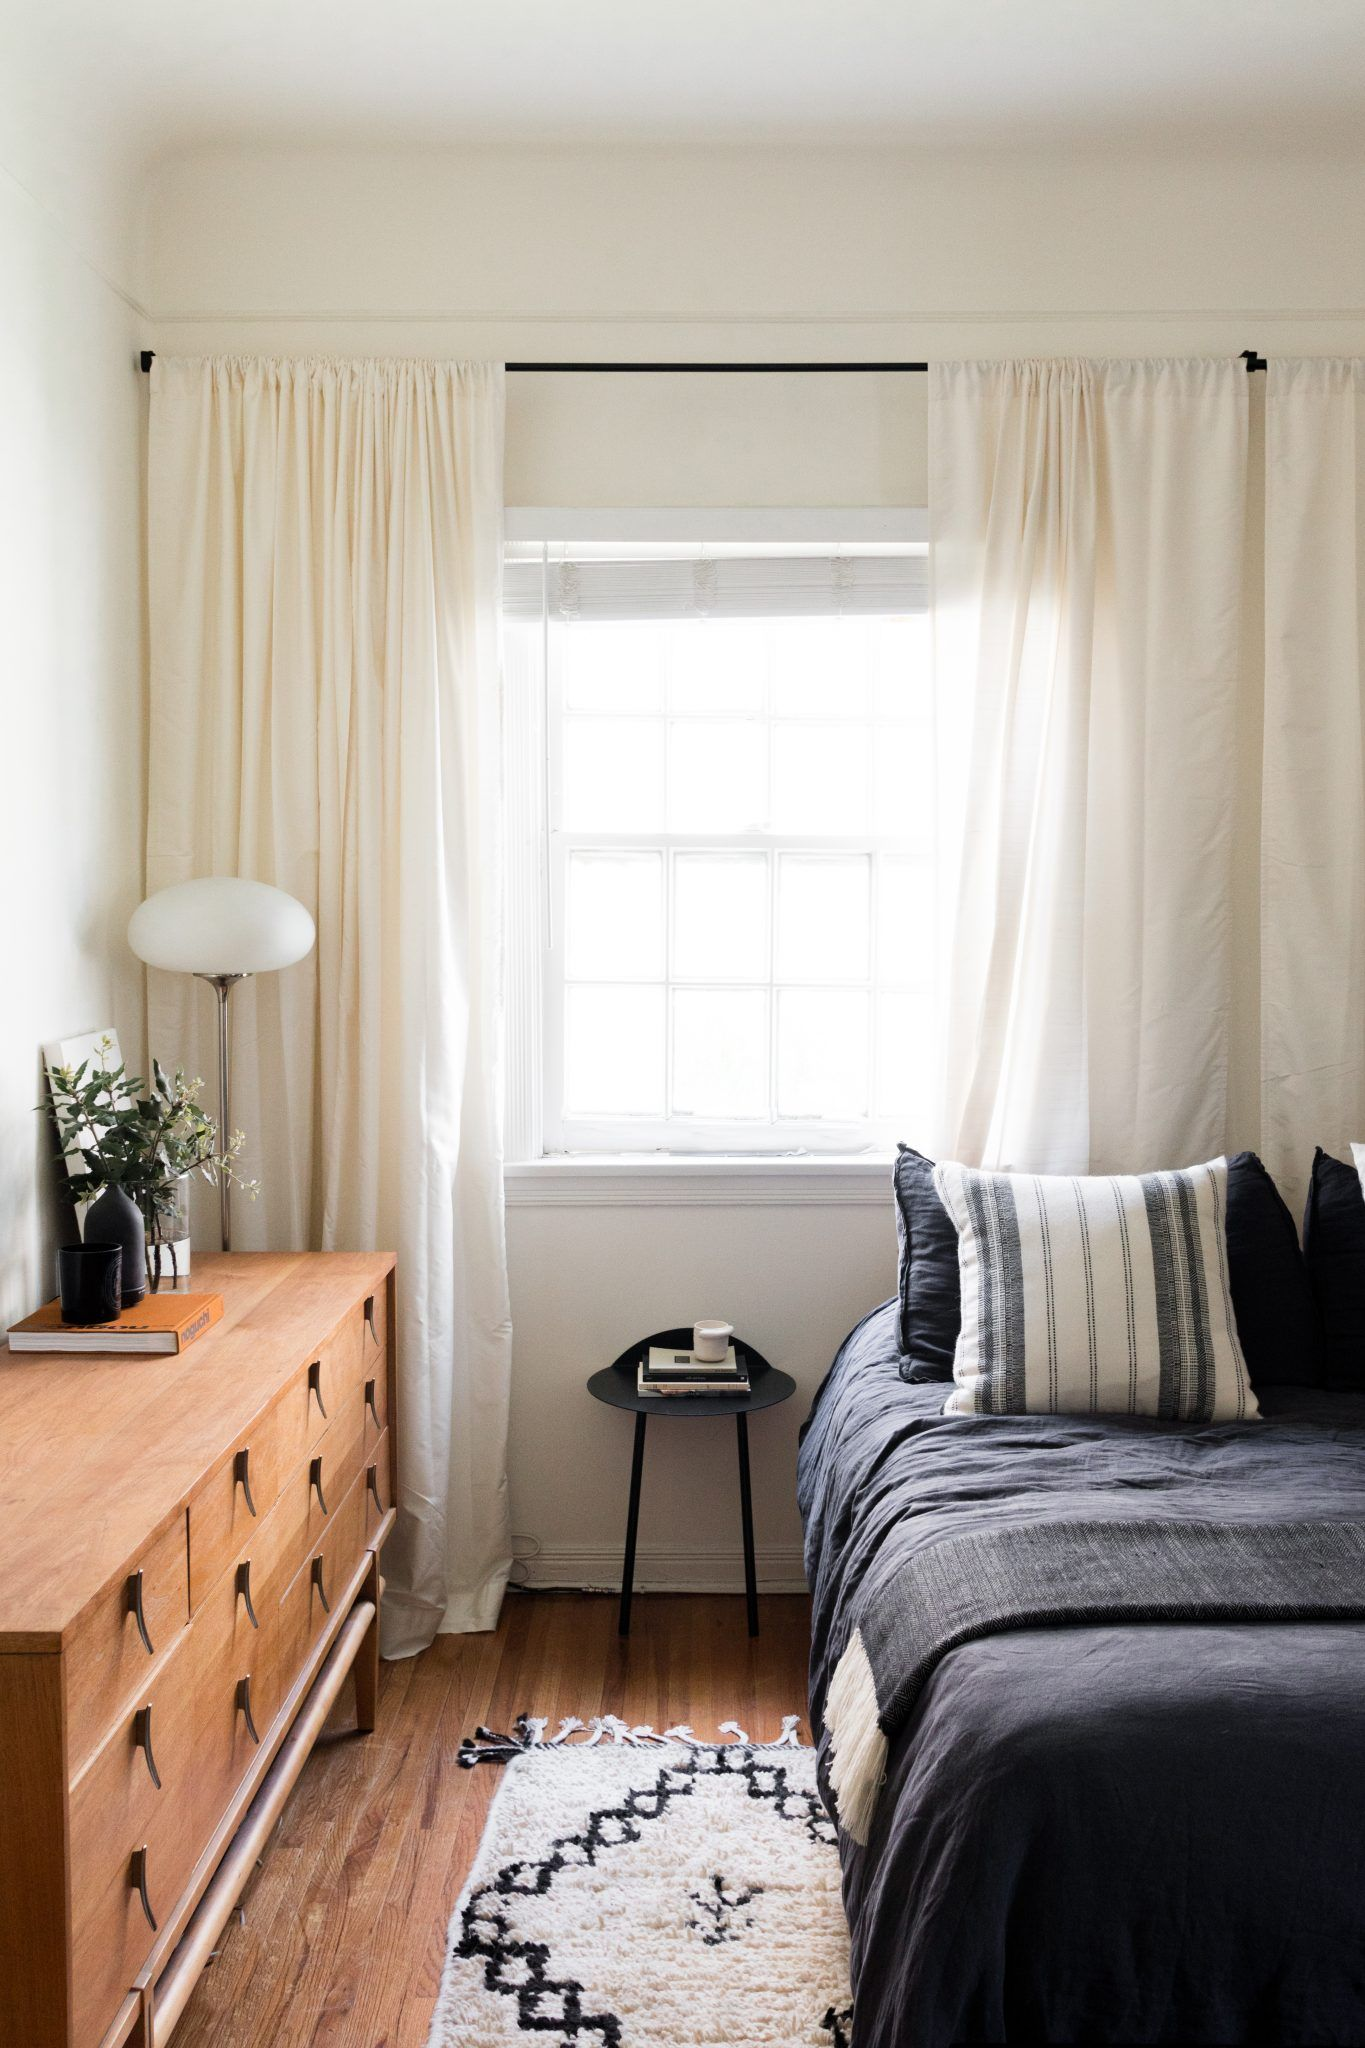 Window decor for bedroom  pin by chloe on room renovate  pinterest  apartments bedrooms and